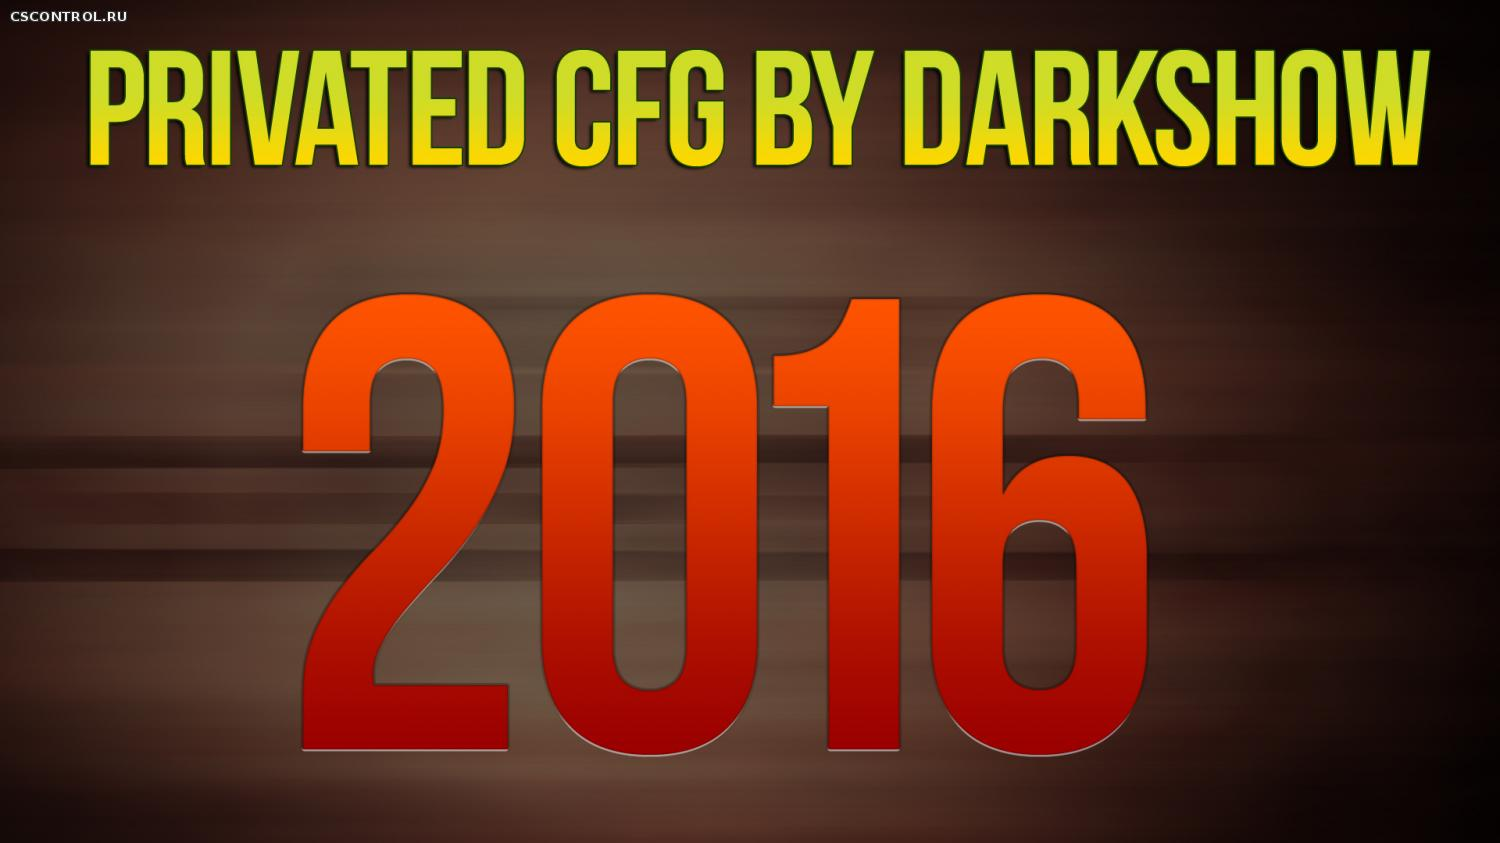 NEW PRIVATED CFG BY DARKSHOW 2016 [STEAM - NONSTEAM]